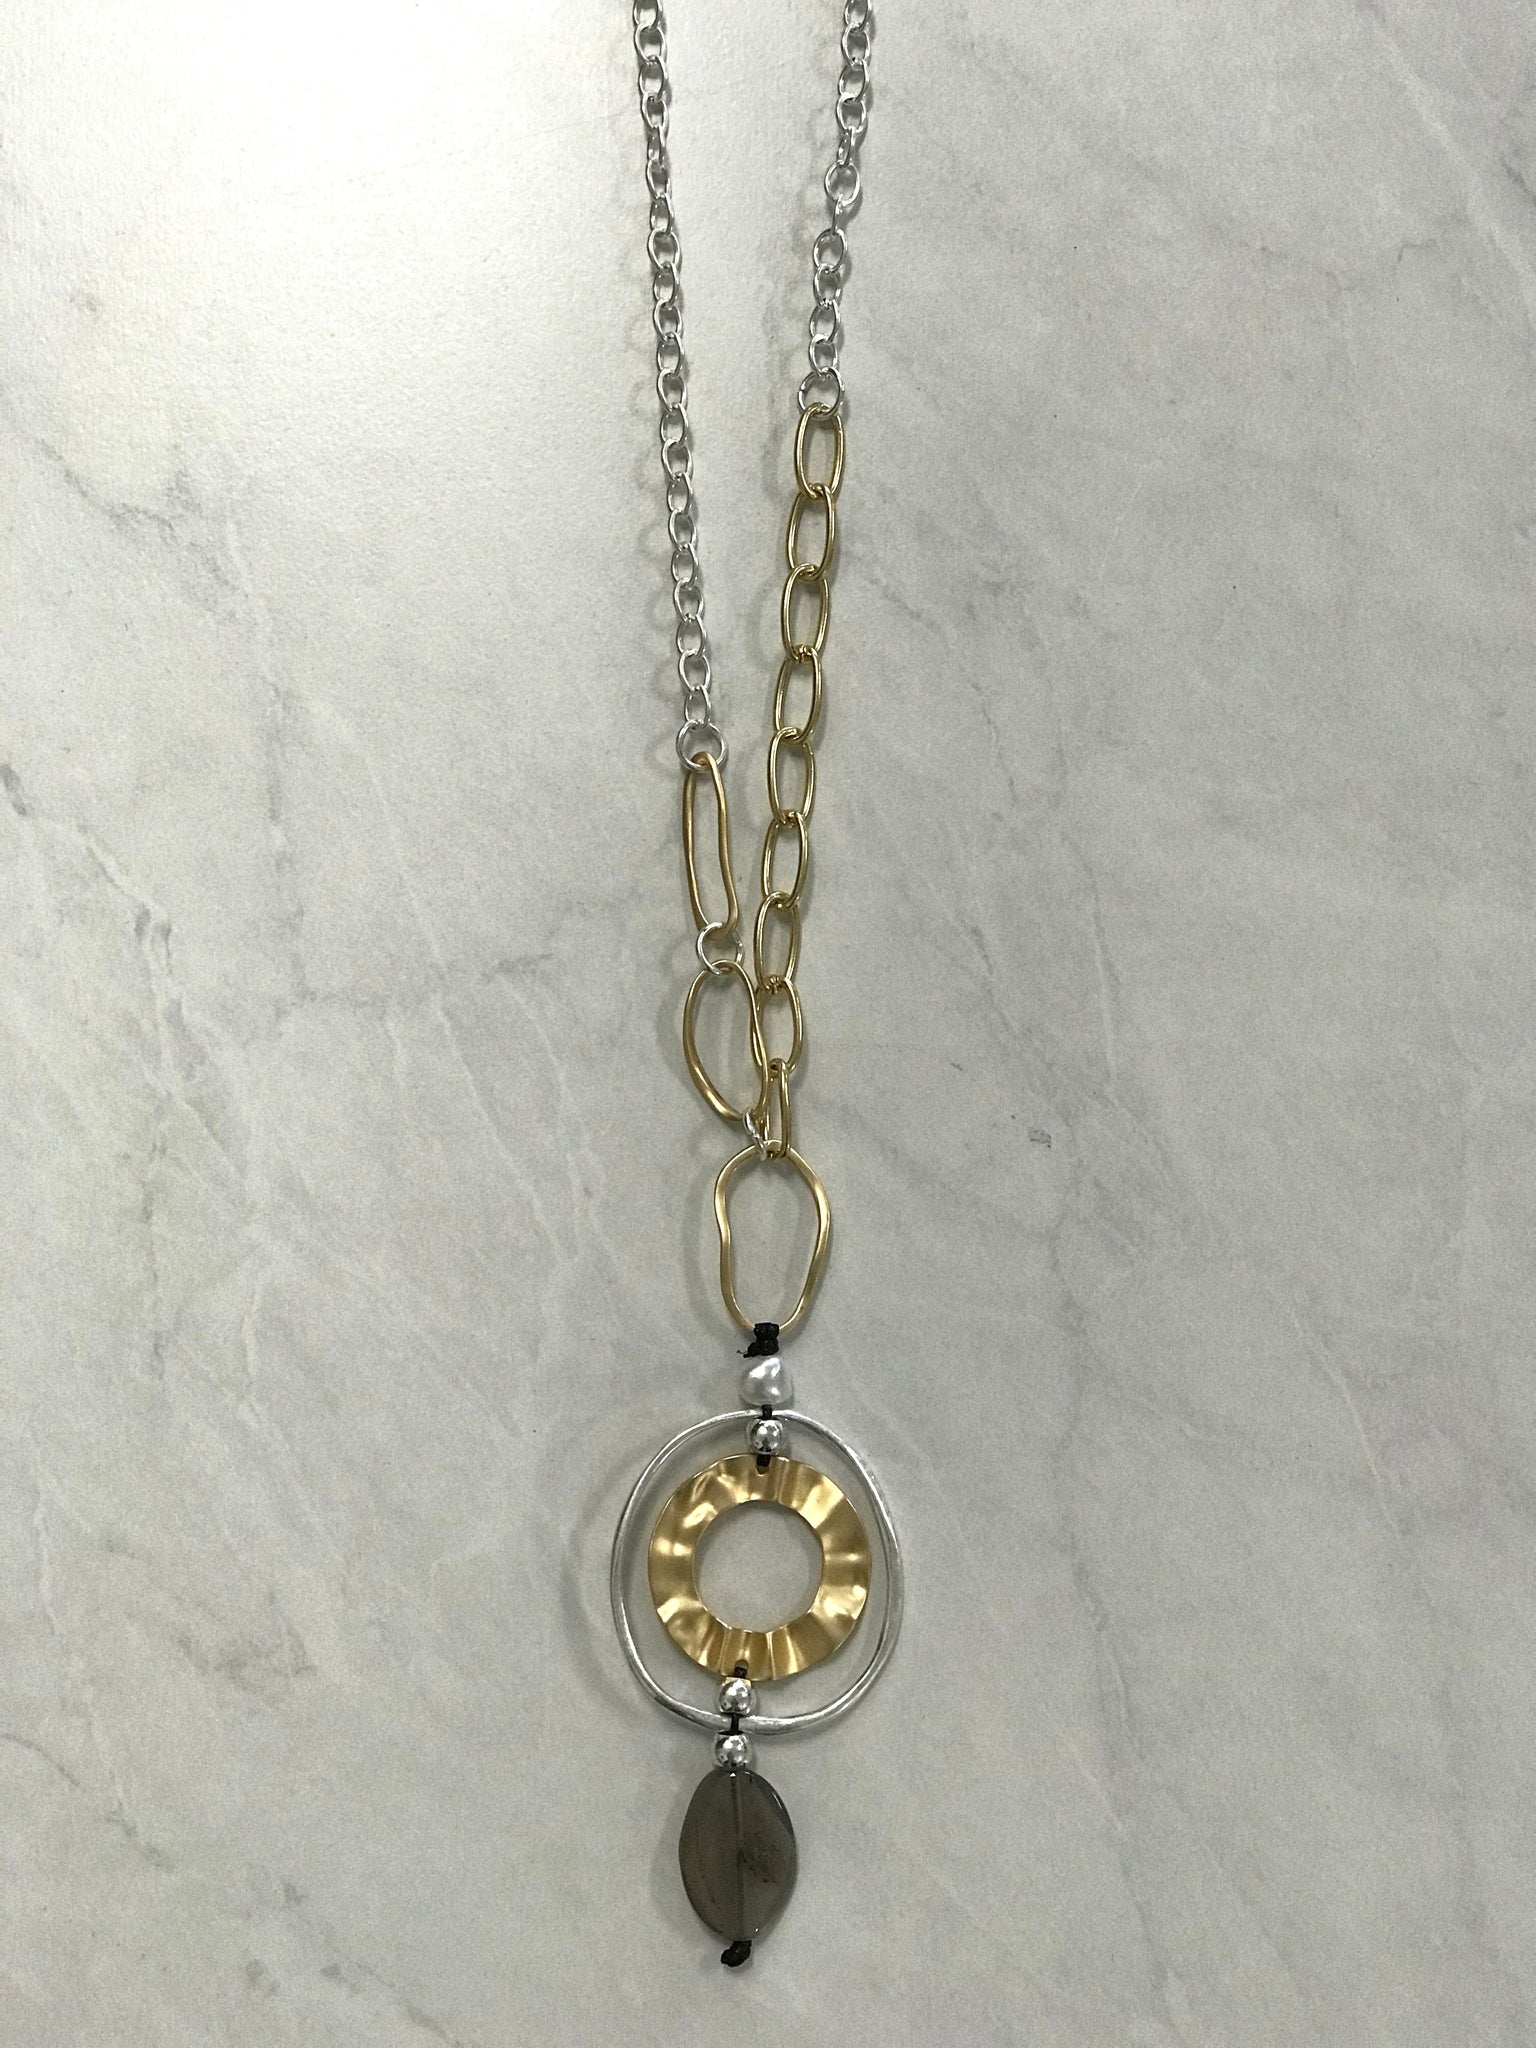 R&L Dreamweaver Pendant Necklace